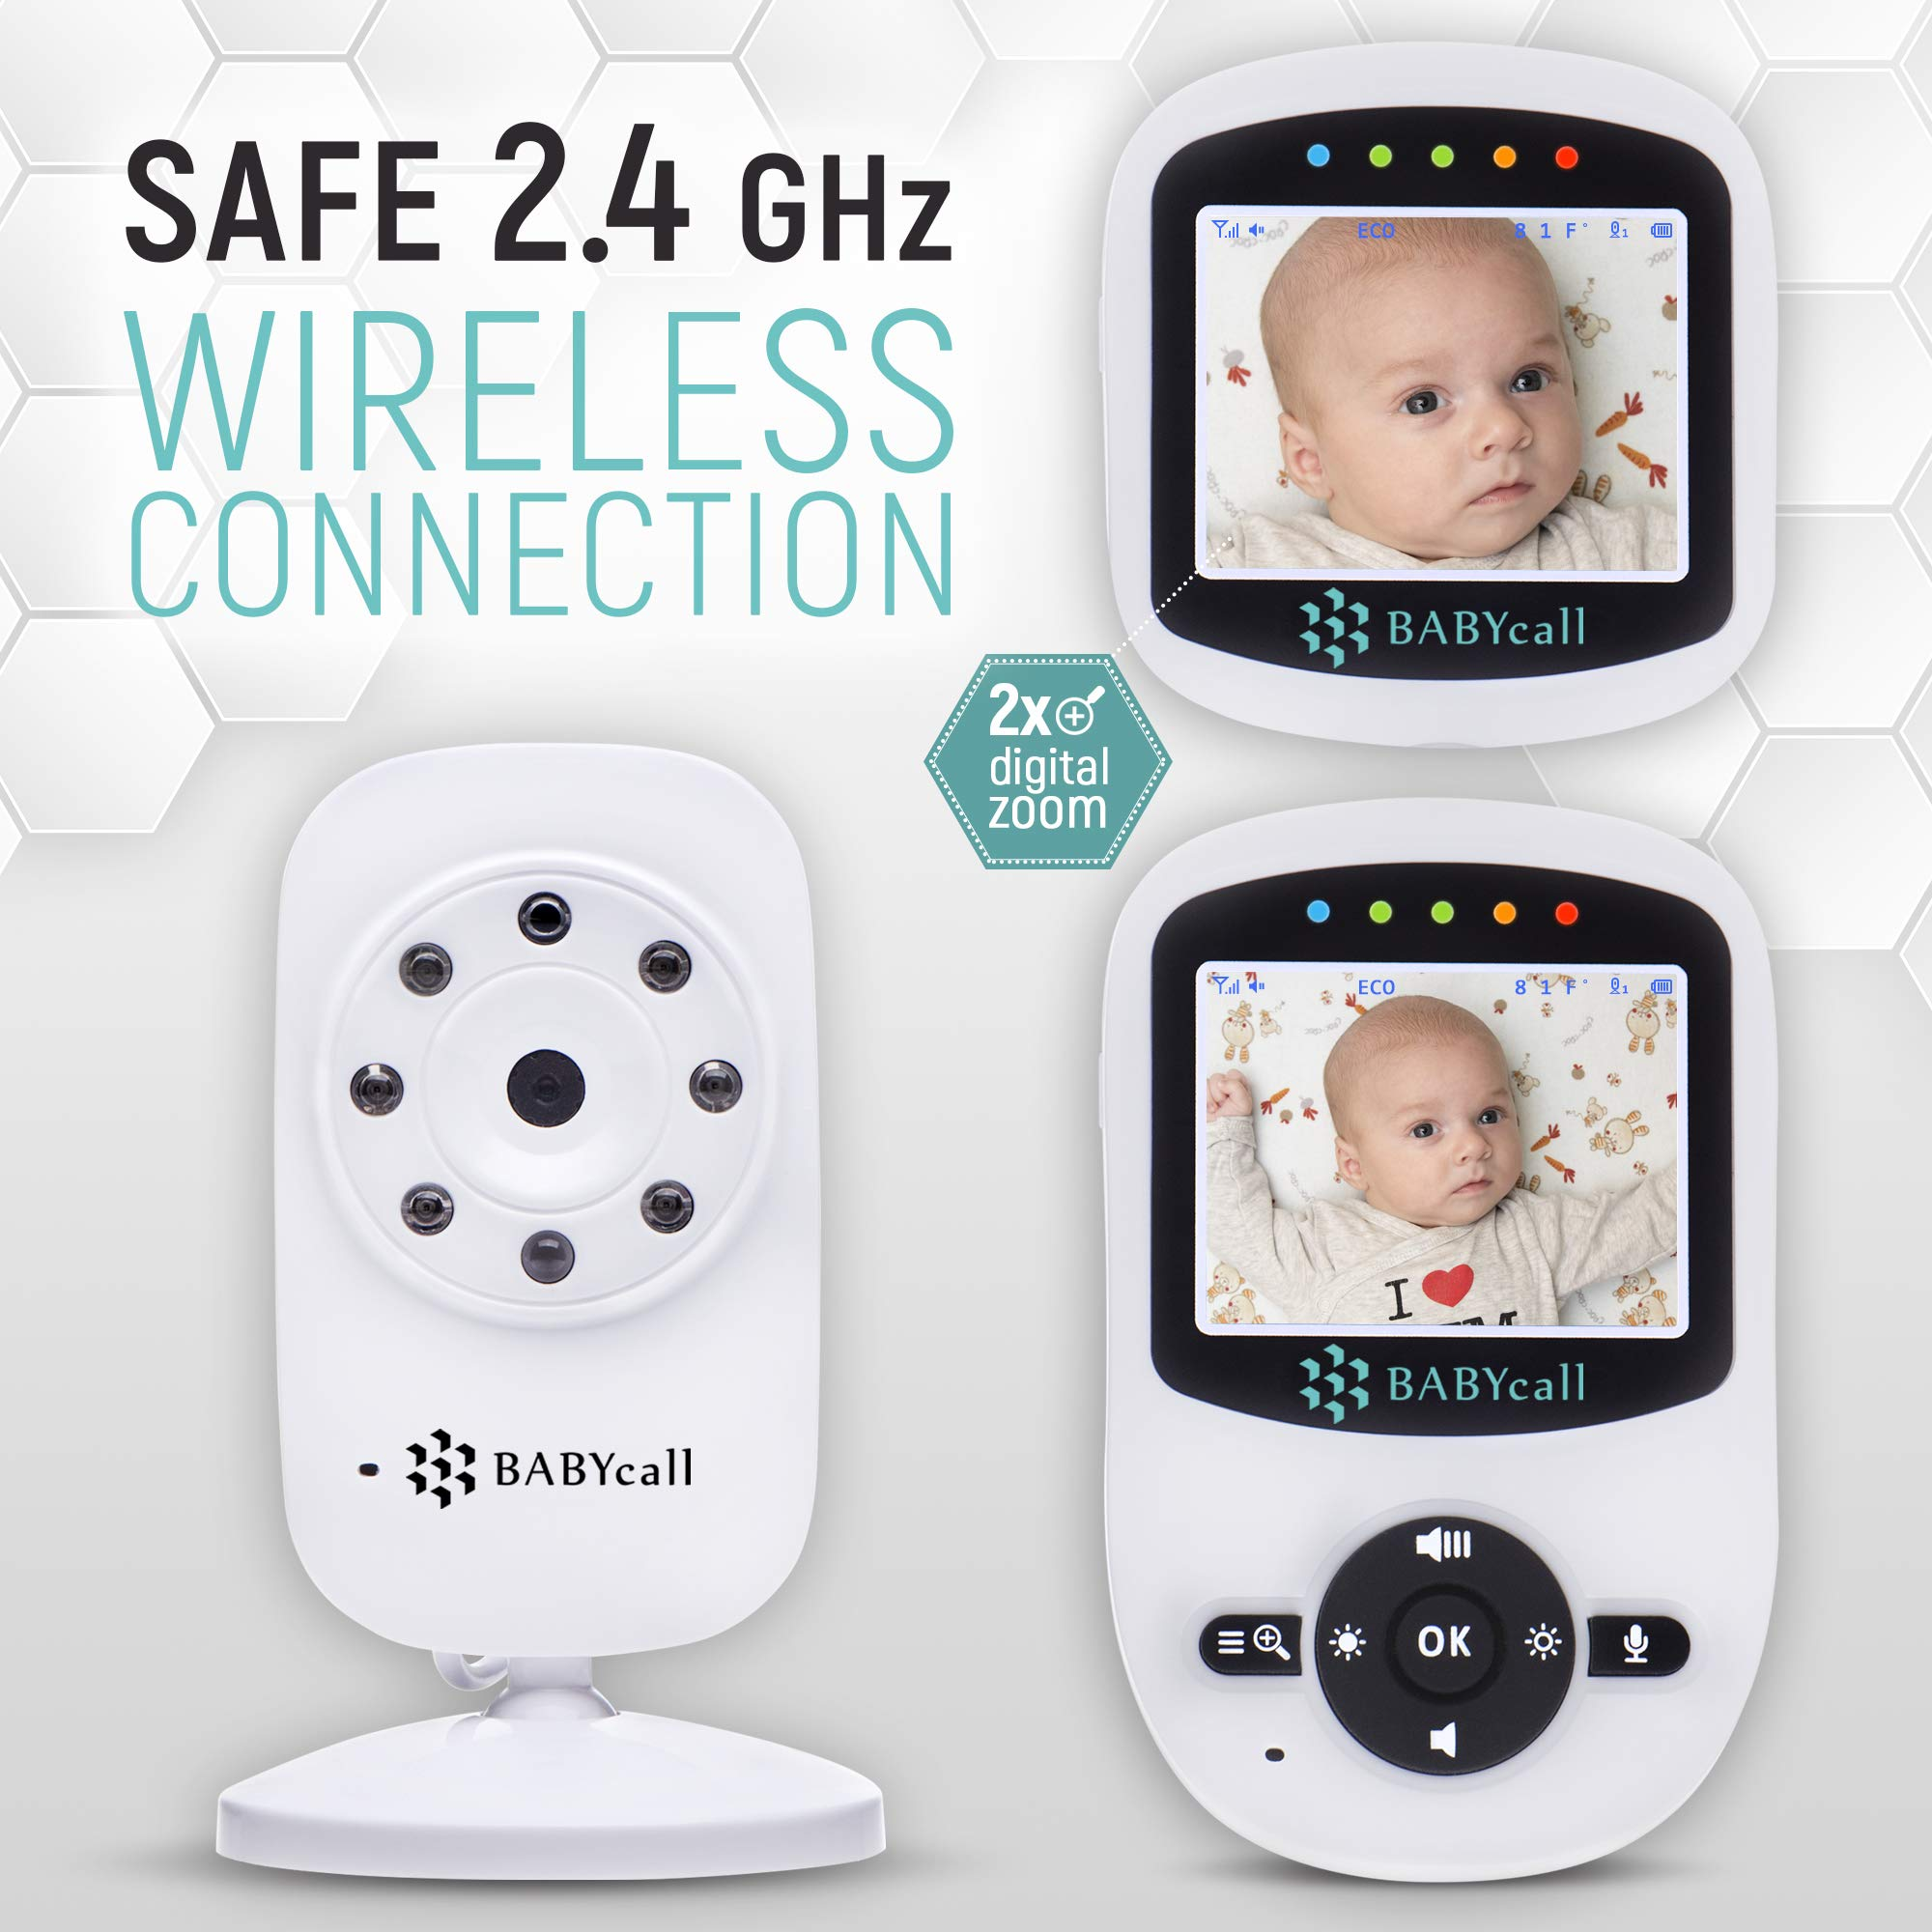 Video Baby Monitor with Camera - Upgrade 2019 Model of Monitoring System with Night Vision, Two Way Audio, Temperature detectors - Long Range Wireless Monitoring by BABYcall by BABYcall (Image #6)